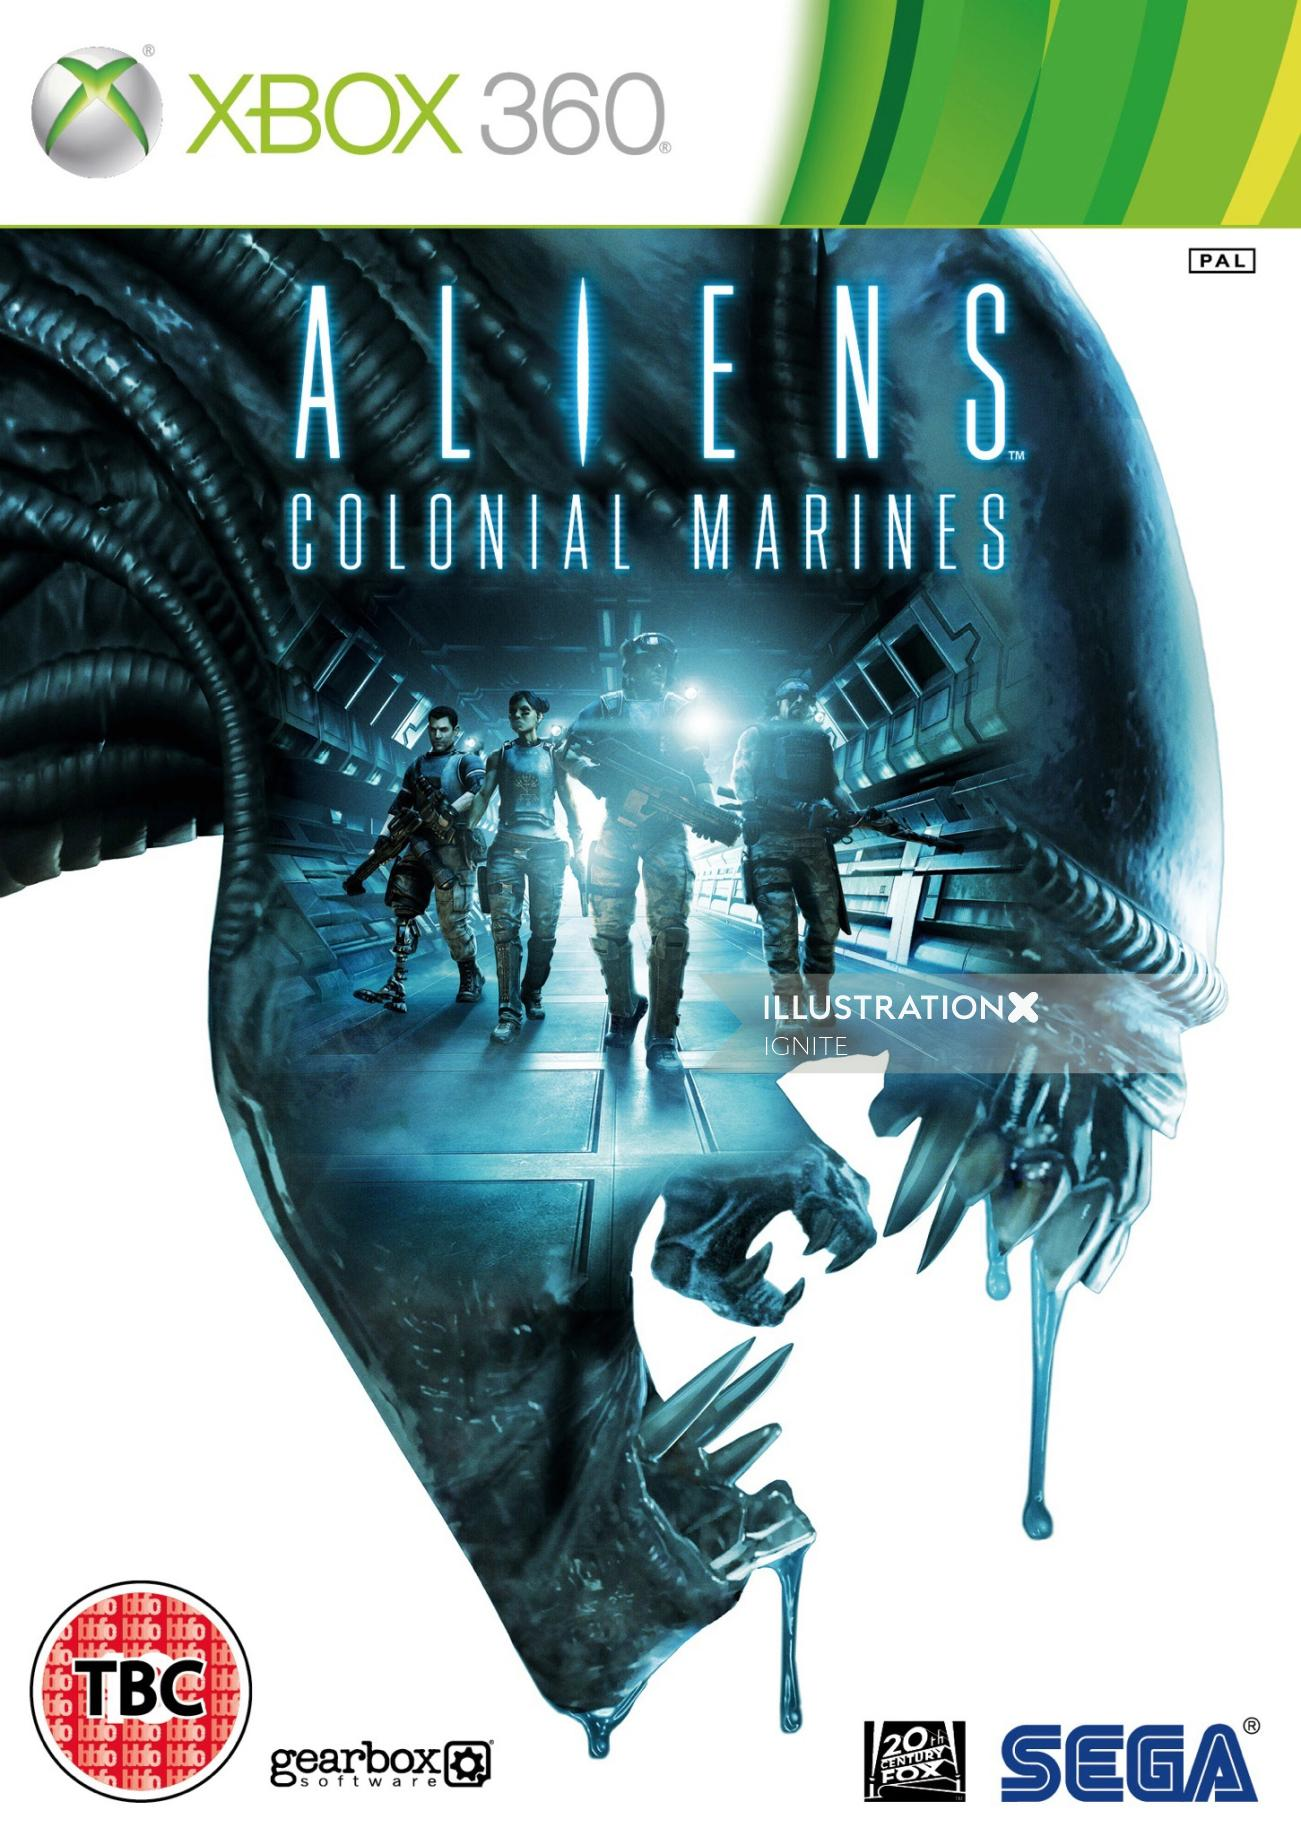 Aliens Colonial Marines Poster Art For Xbox 360